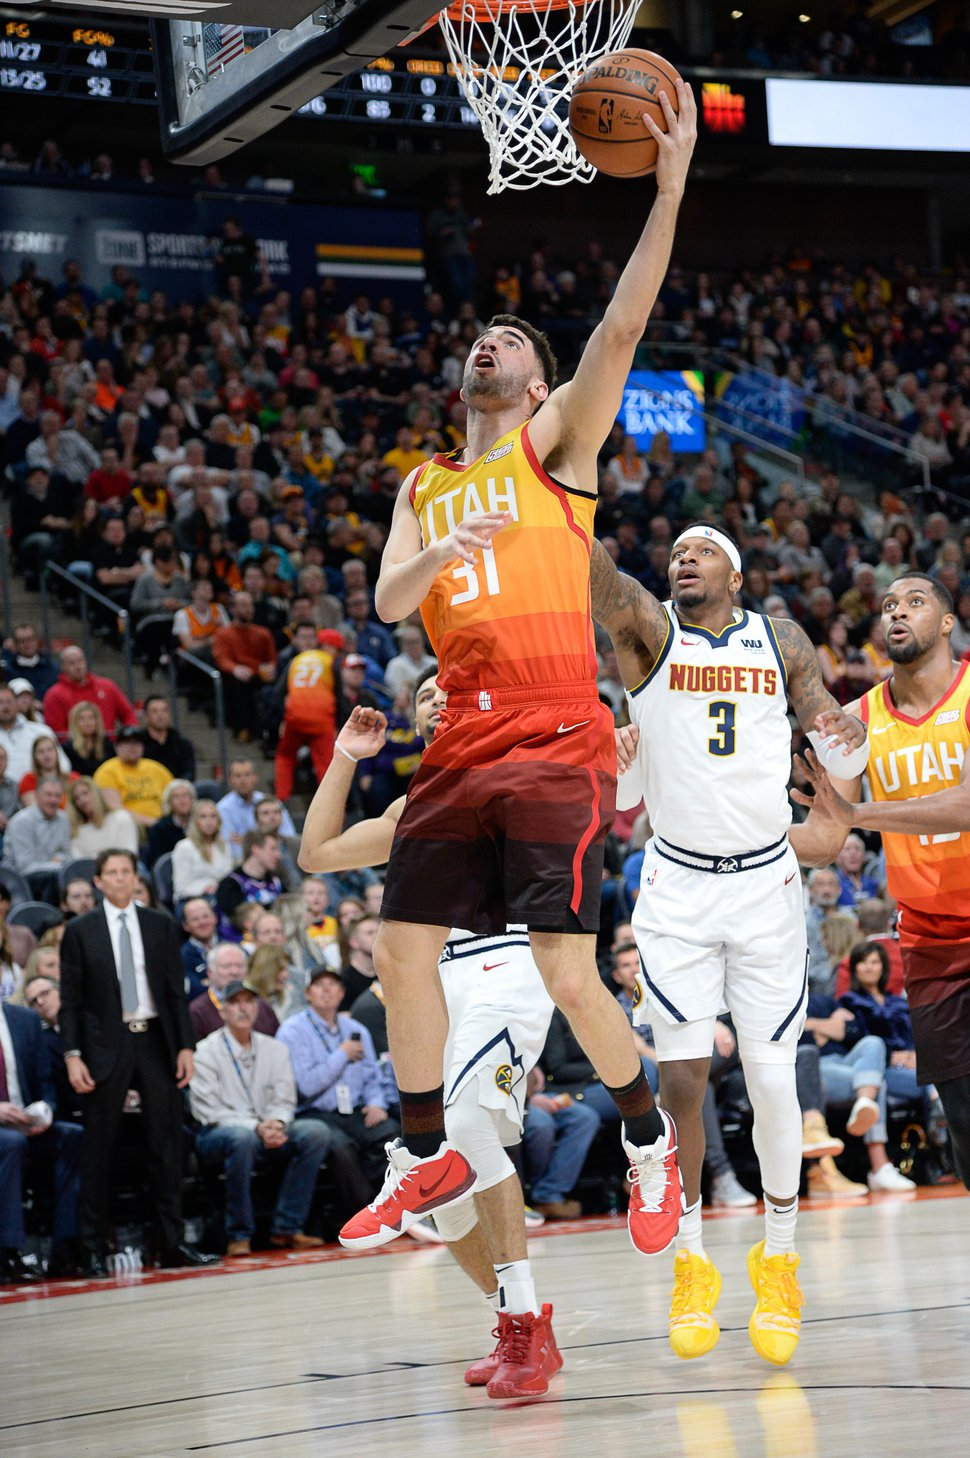 (Francisco Kjolseth | The Salt Lake Tribune) Utah Jazz forward Georges Niang (31) as the Utah Jazz host the Denver Nuggets in their NBA game at Vivint Smart Home Arena Tuesday, April 9, 2019, in Salt Lake City.